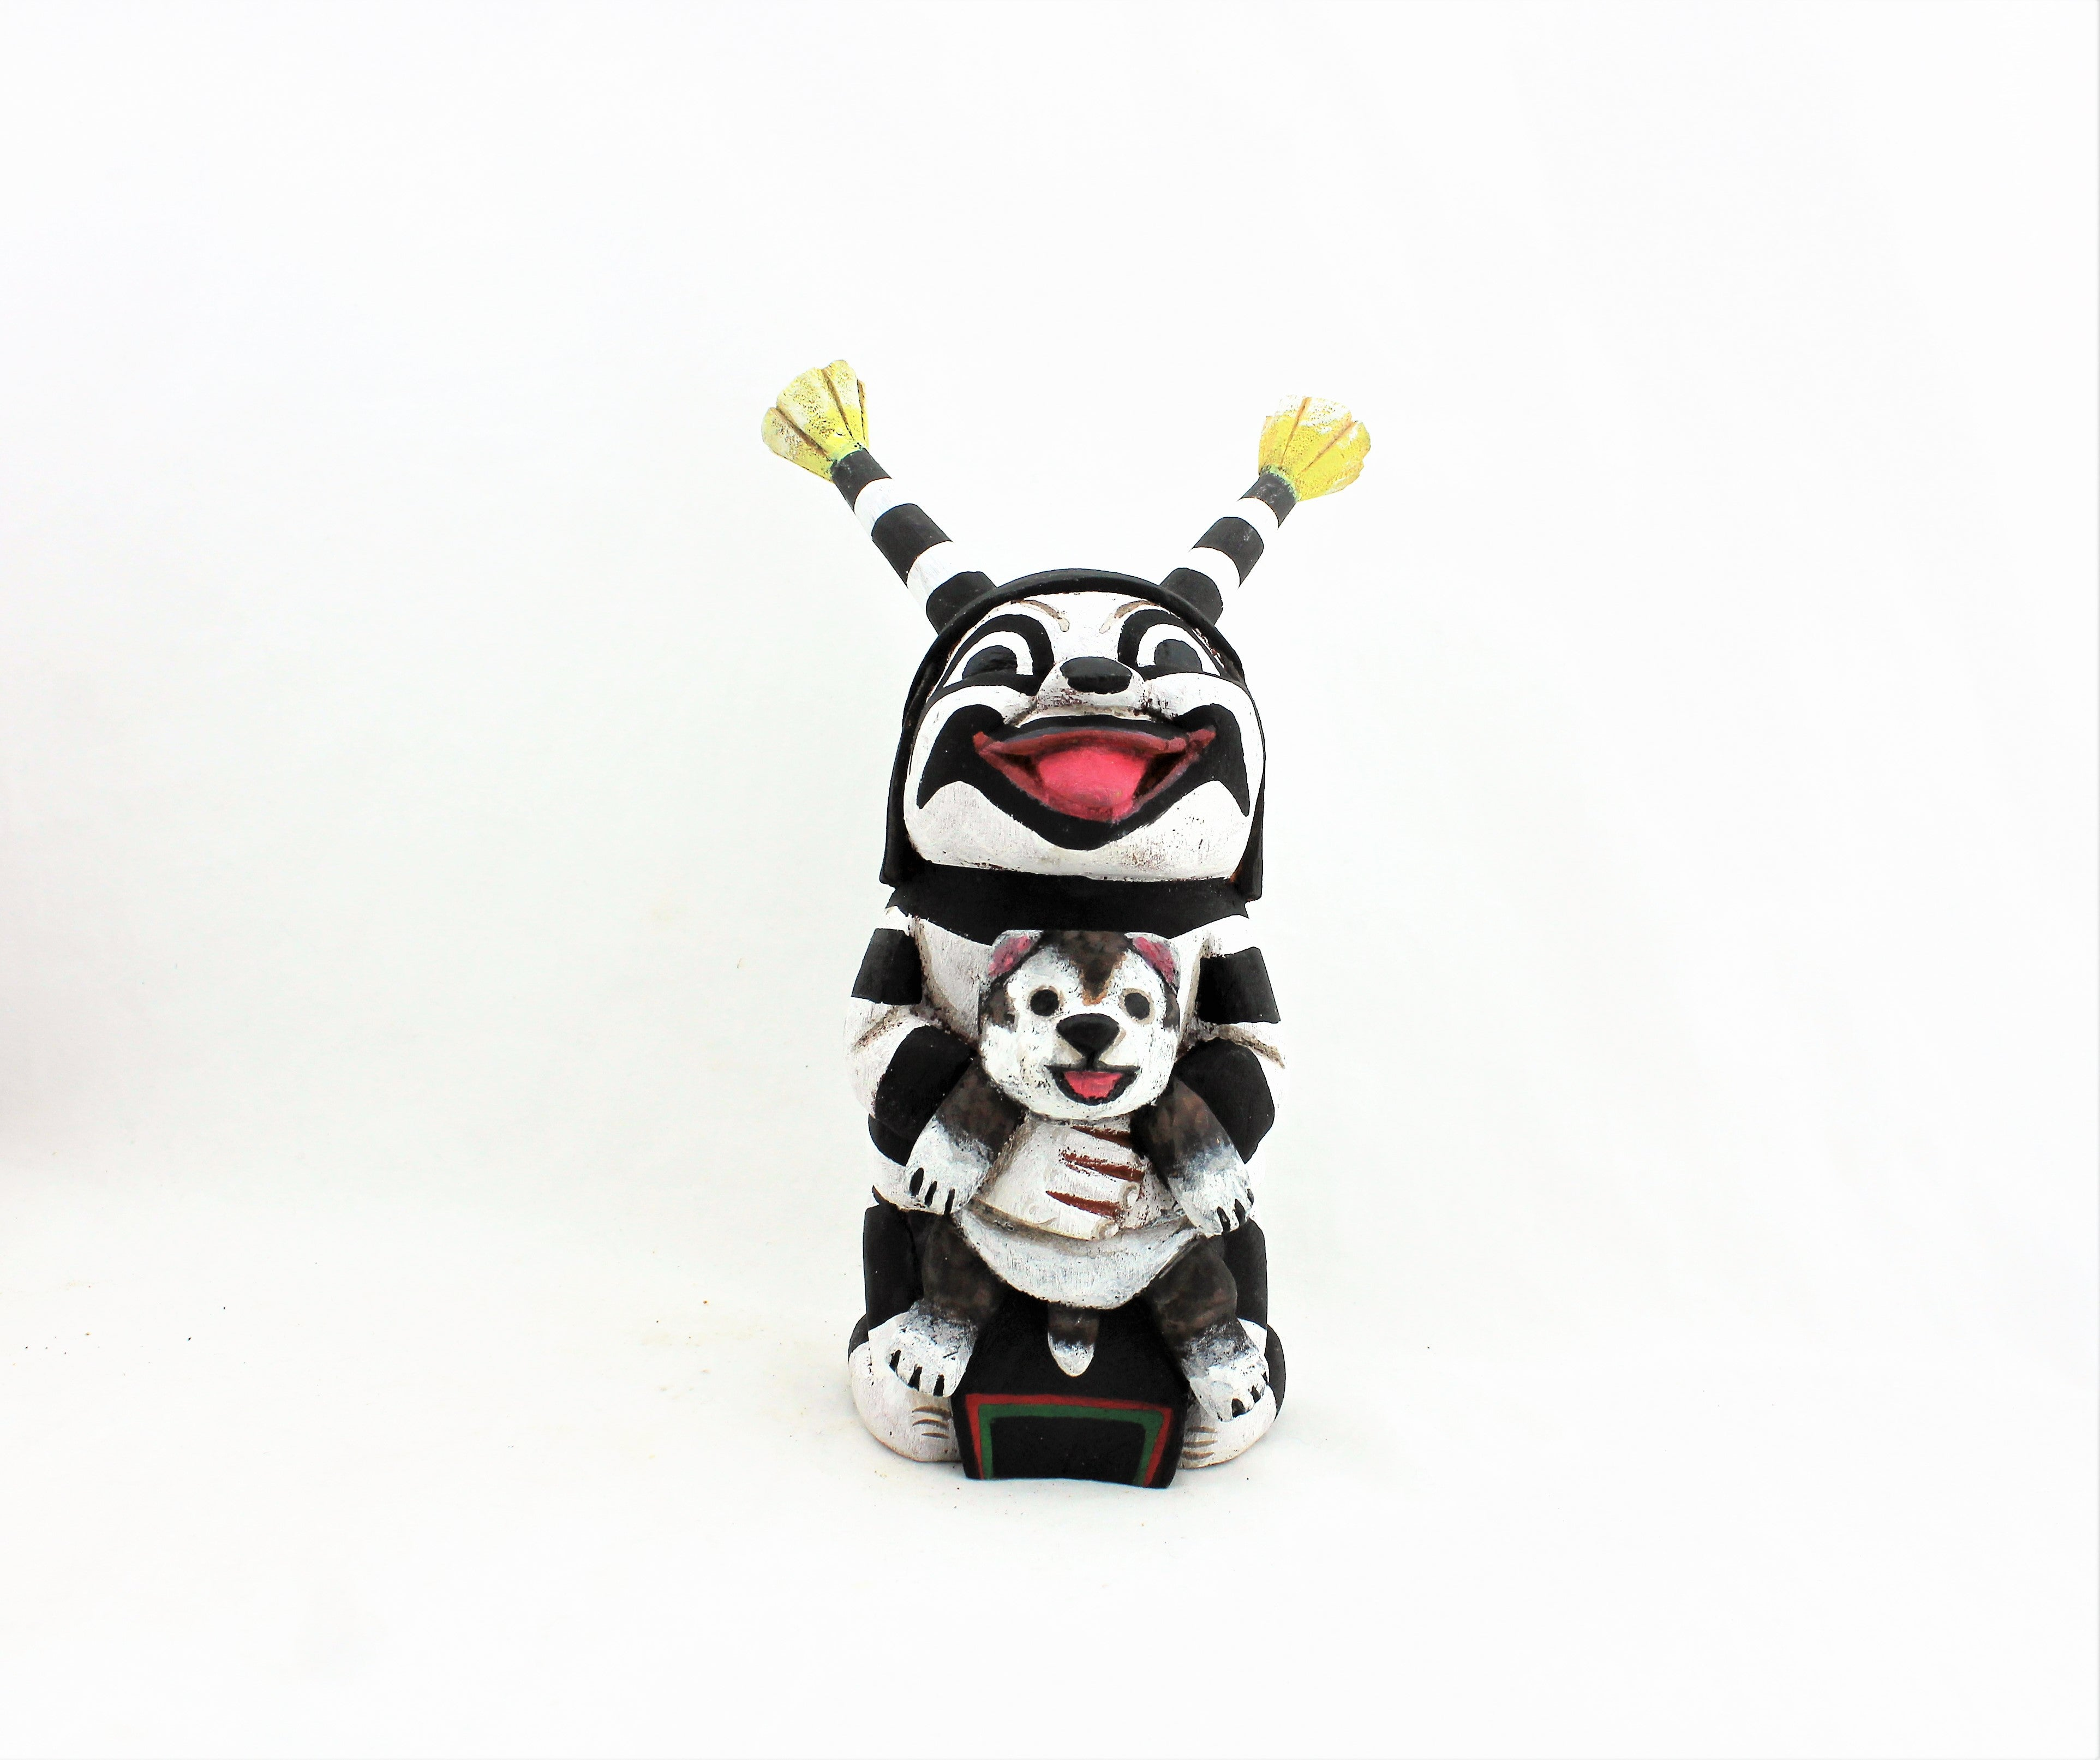 John David Sr. Clown Kachina